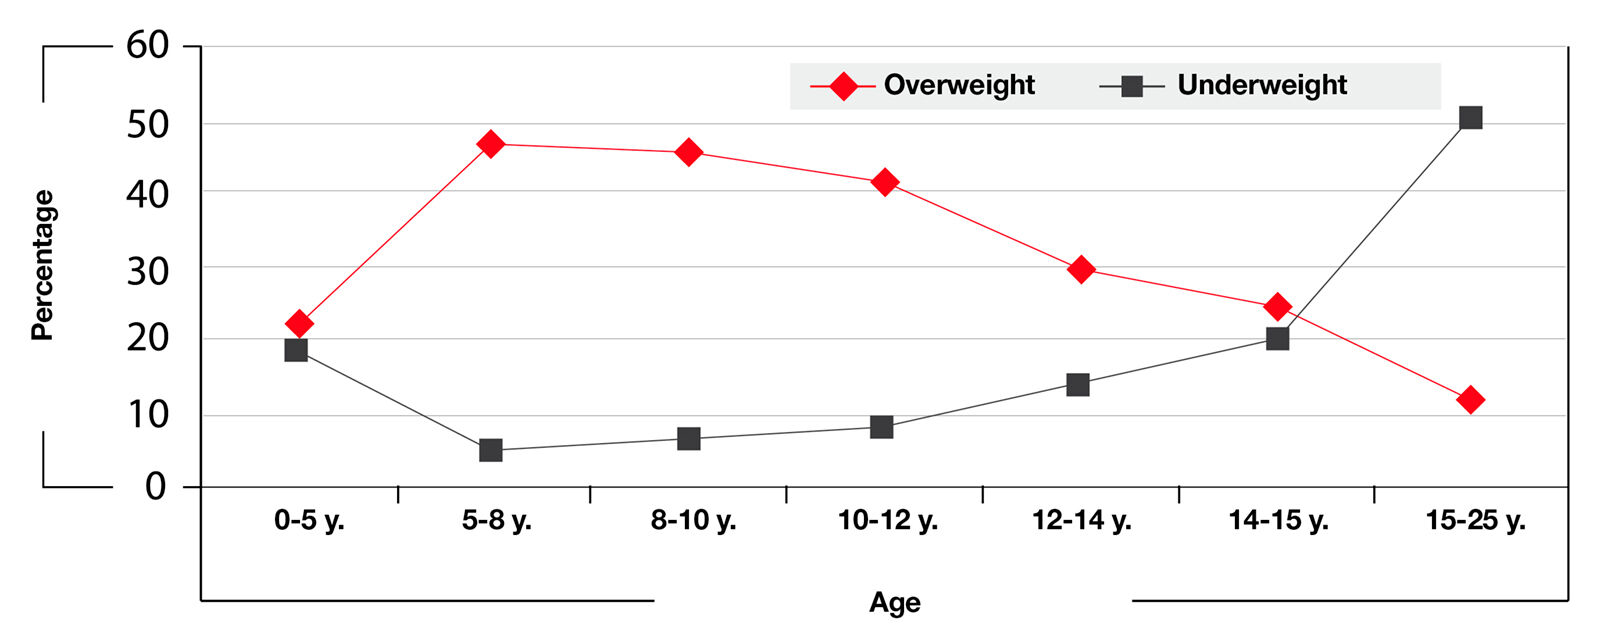 Figure 3. Influence of age on body condition in cats (9,13).